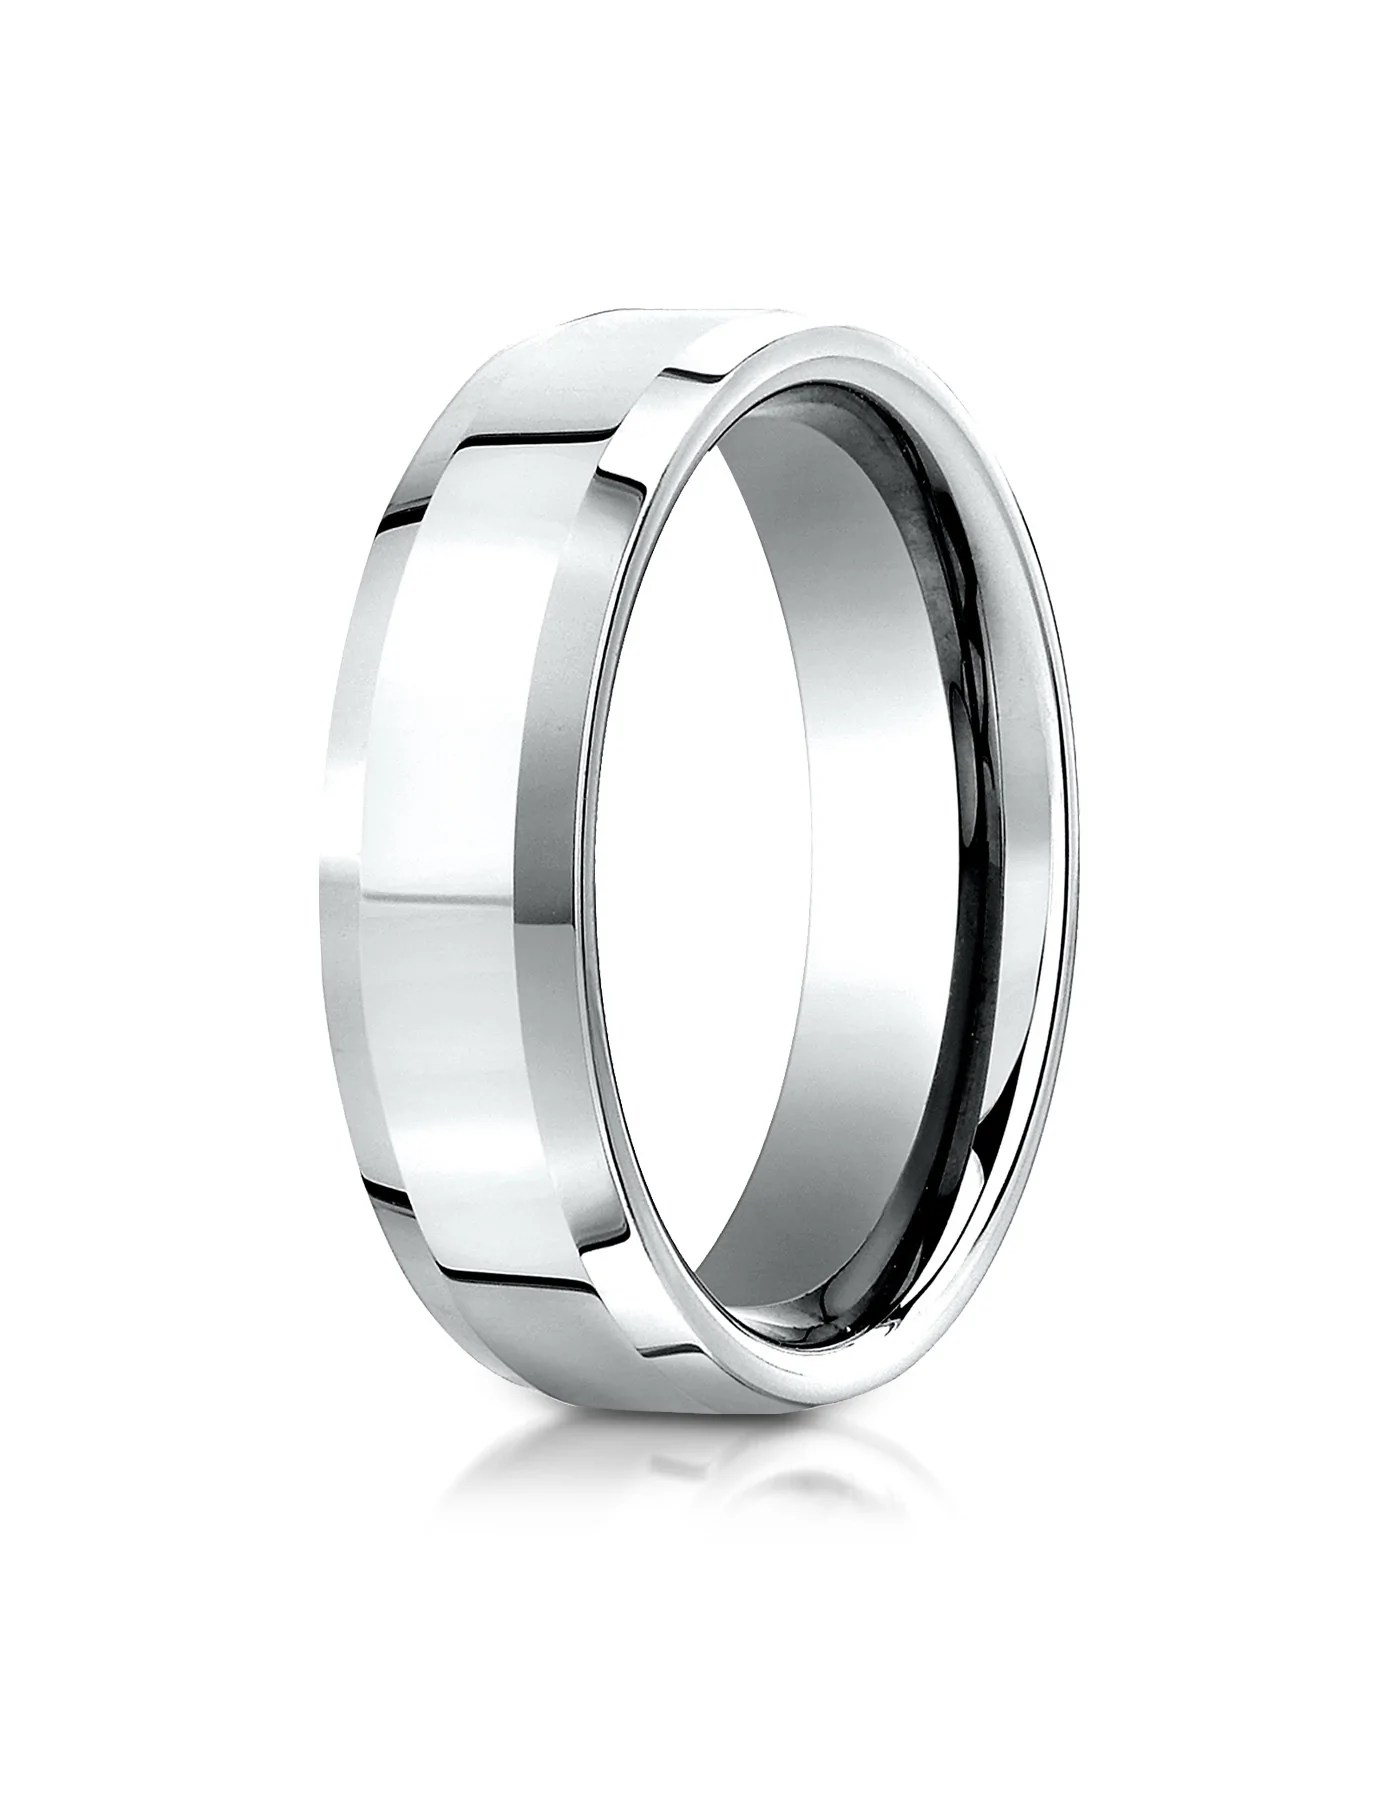 paris 10k mens white gold polished wedding band by benchmark white gold wedding band PARIS 10k Men s White Gold Polished Wedding Band by Benchmark